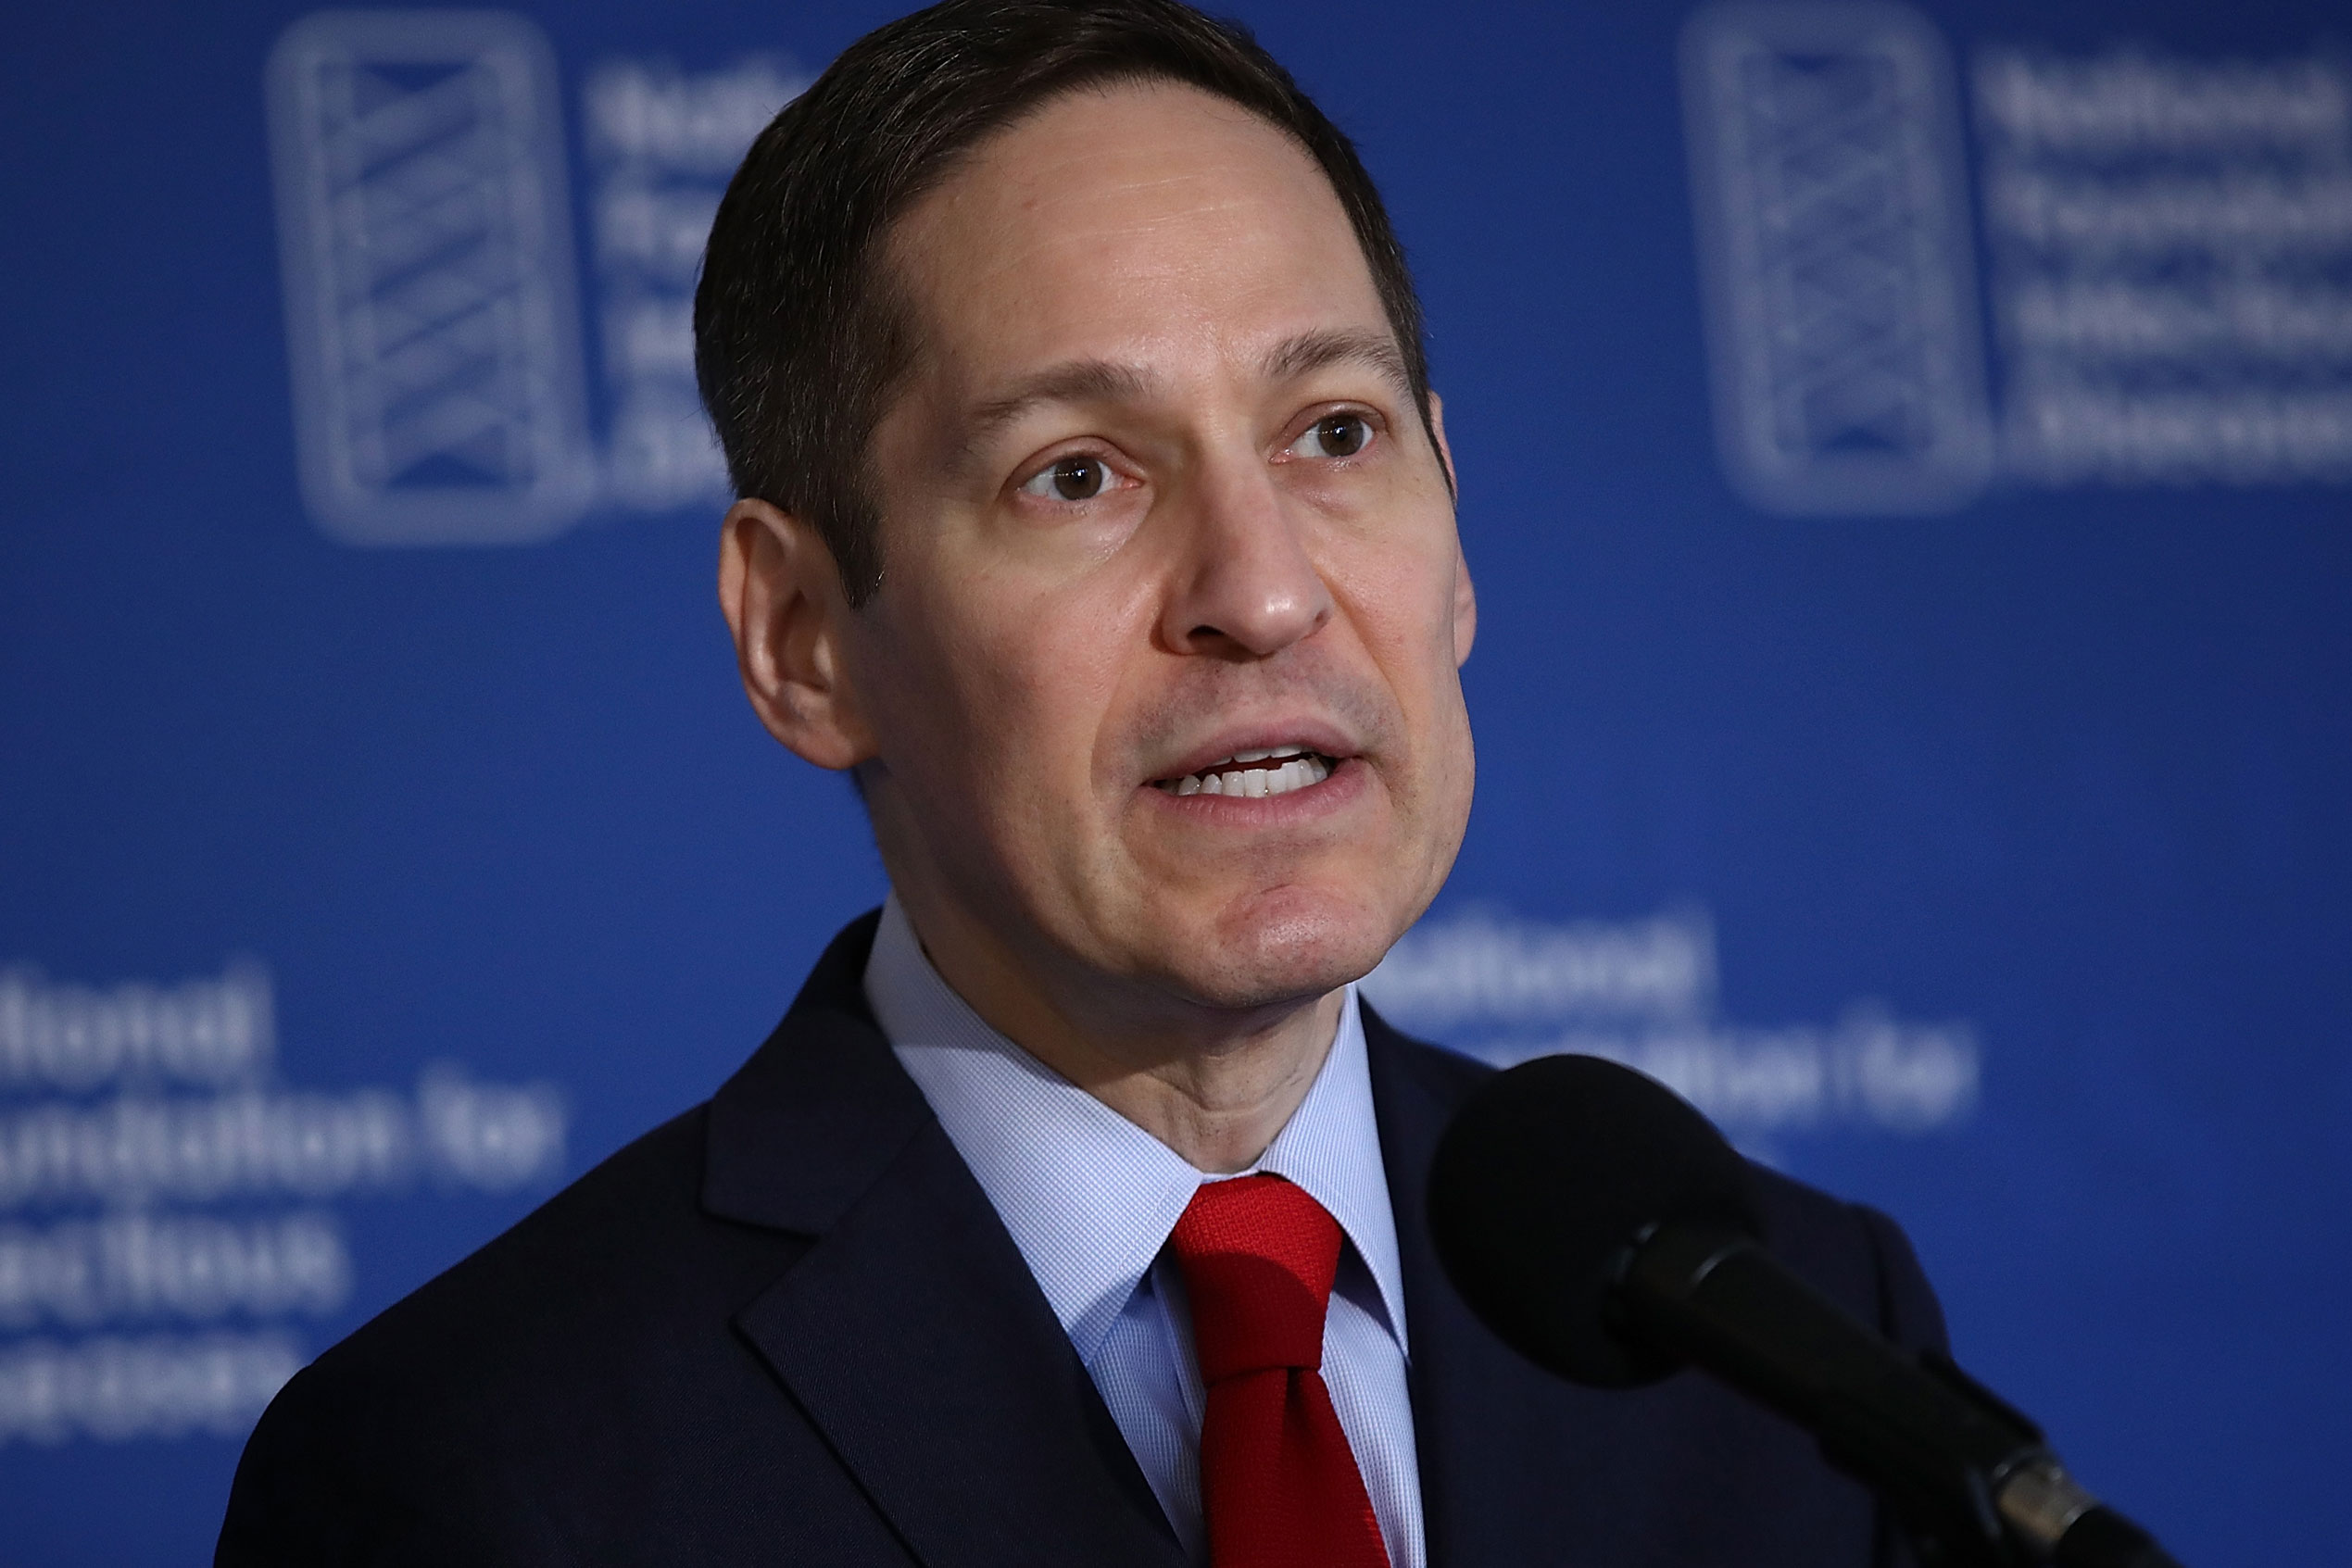 Dr. Tom Frieden in 2016